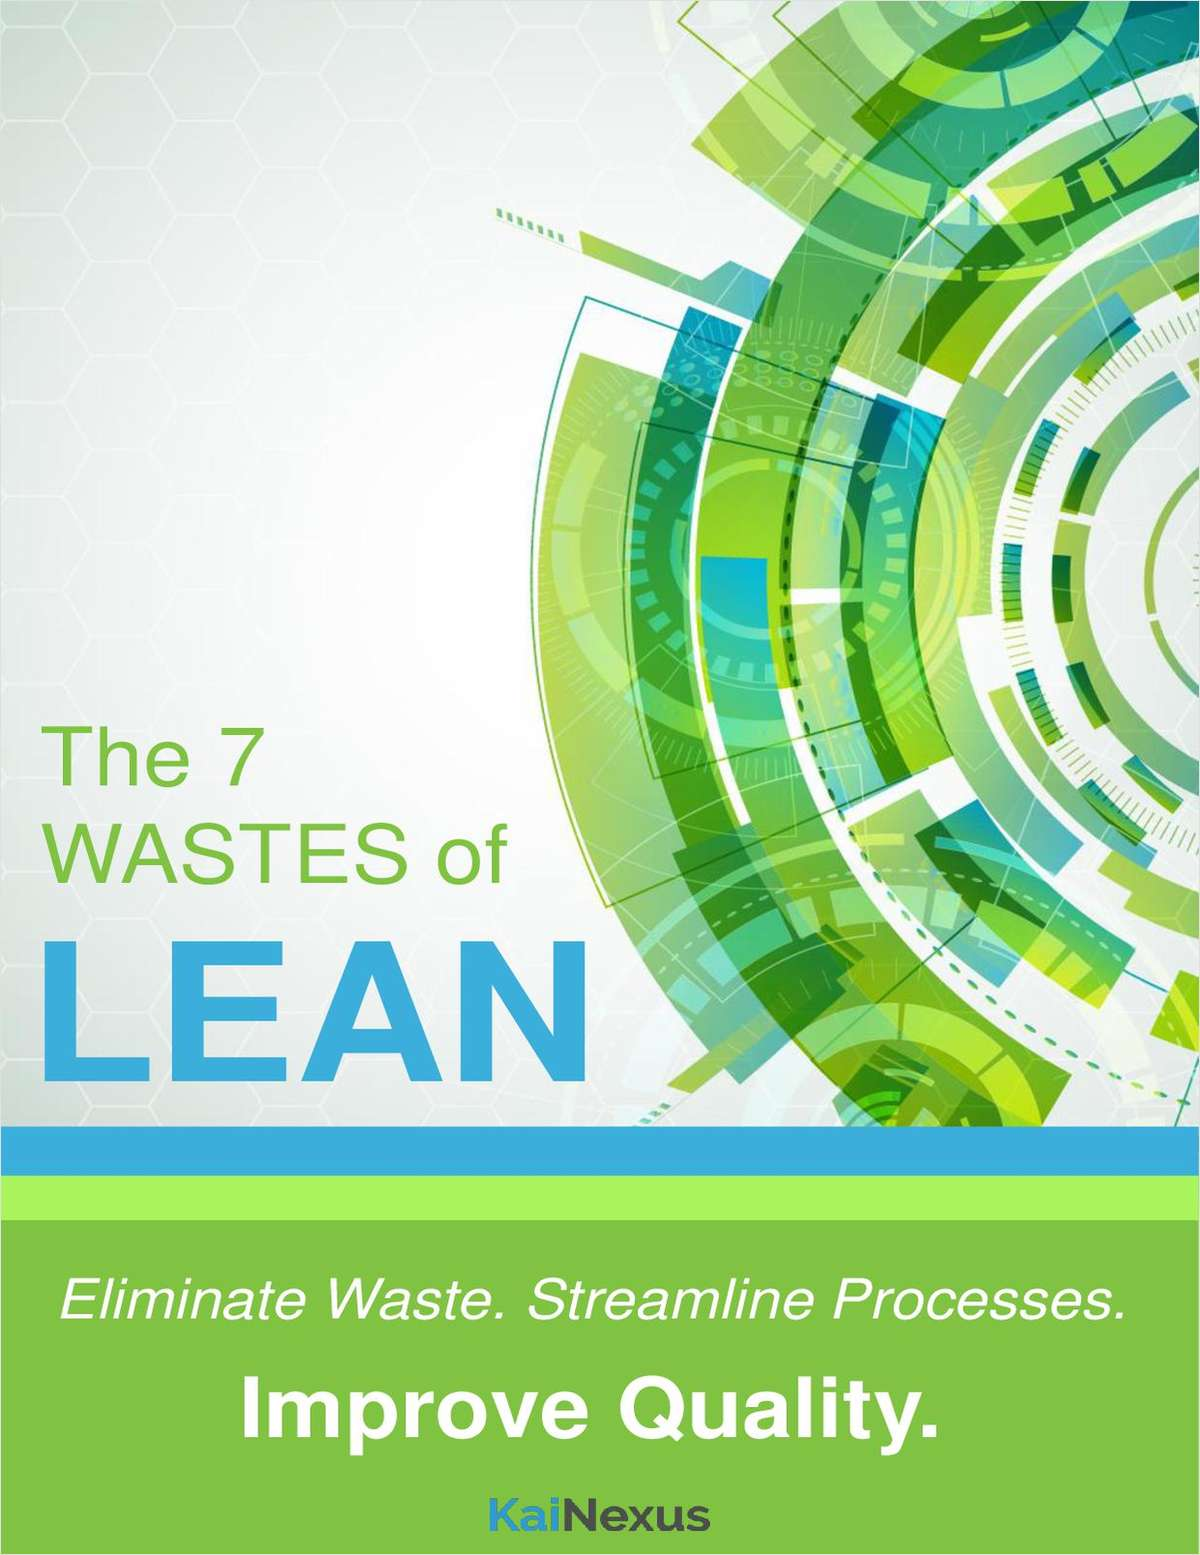 The 7 Wastes of Lean